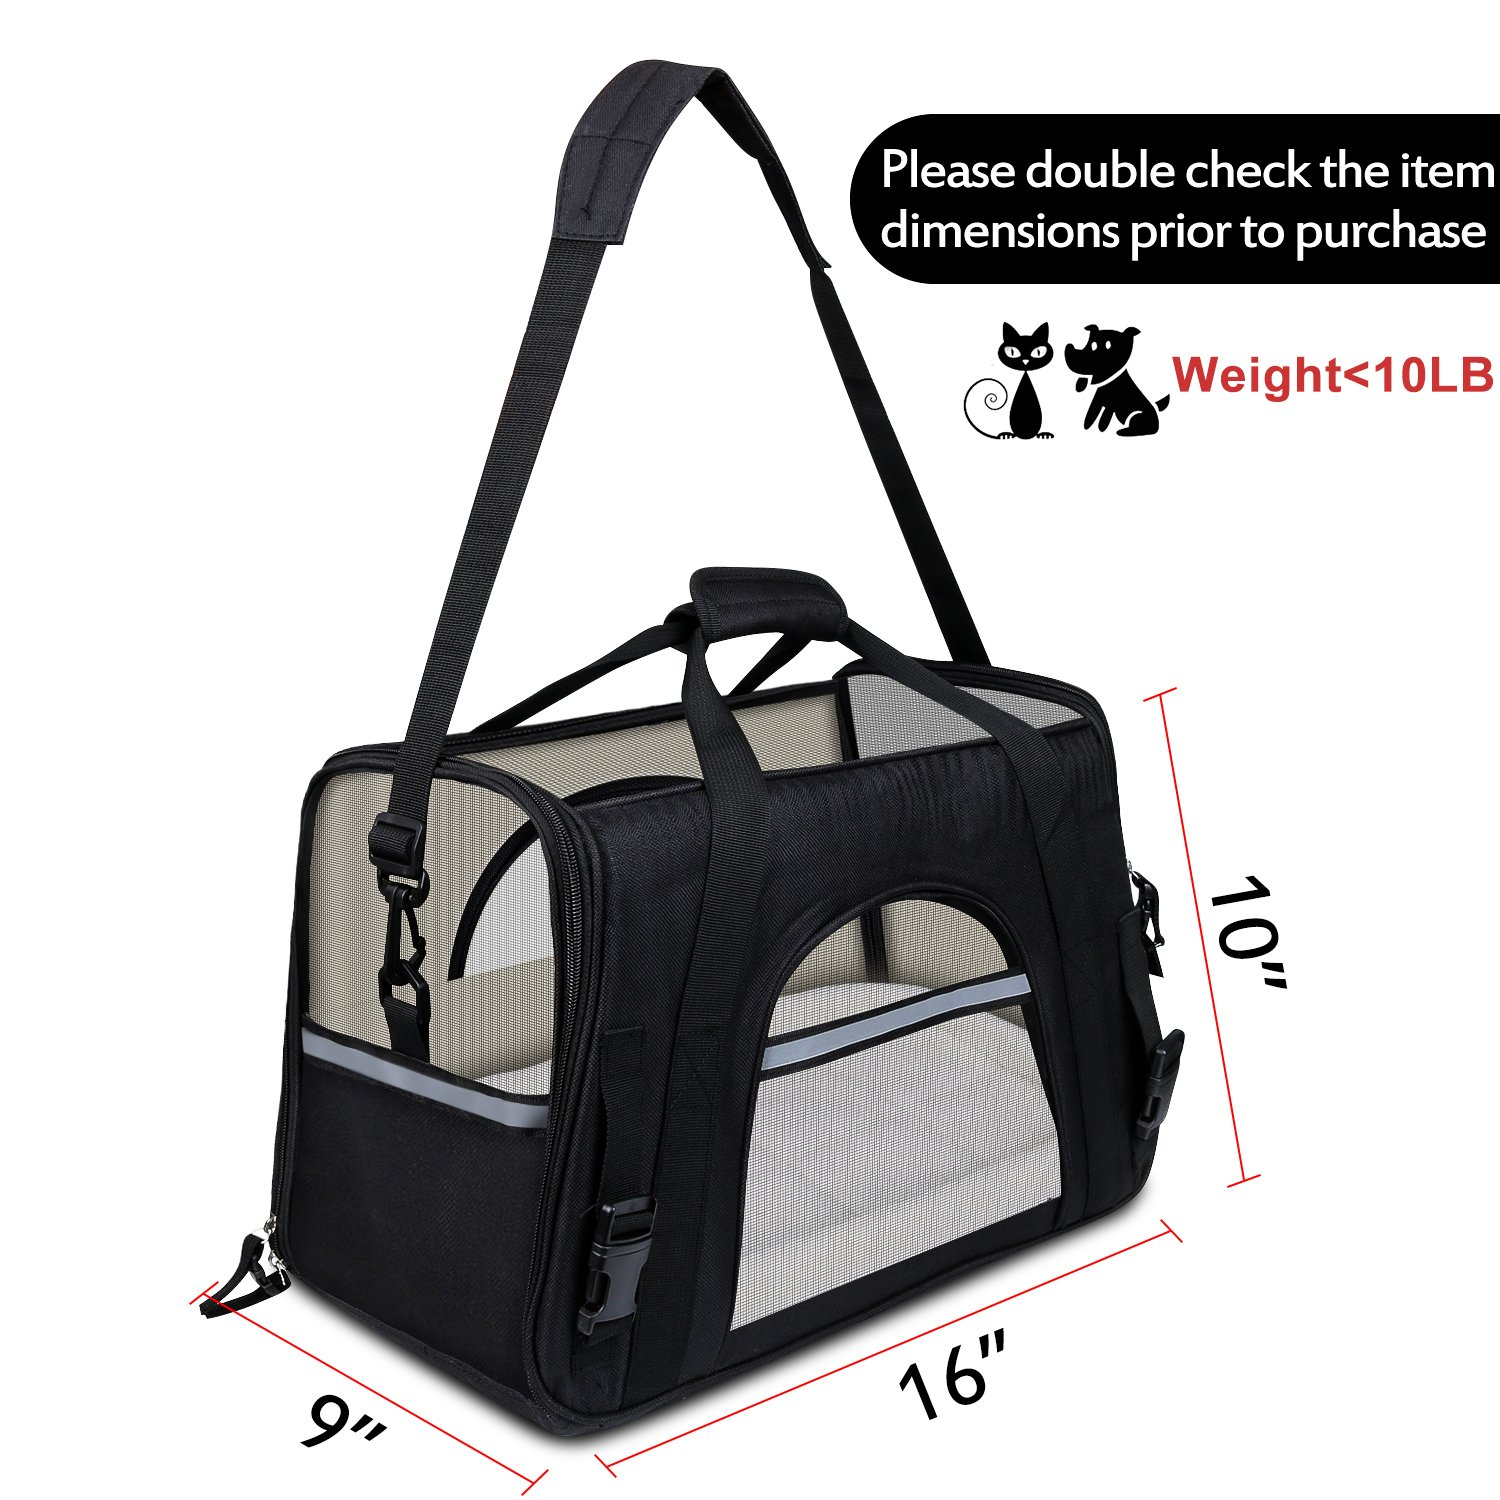 GDPETS Pet Carrier, Airline Approved Cat Carrier Bag Small& Medium Sized Animal, Soft-Sided Pet Travel Tote Fleece Bed, Portable Dog Carriers Hold Up to (10lbs) Fit Under Seats by GDPETS (Image #2)